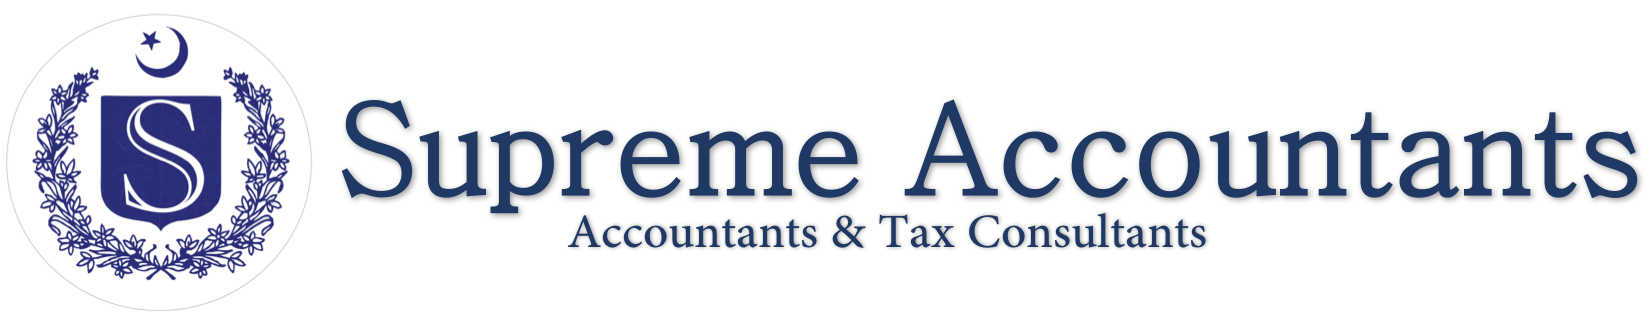 Supreme Accountants